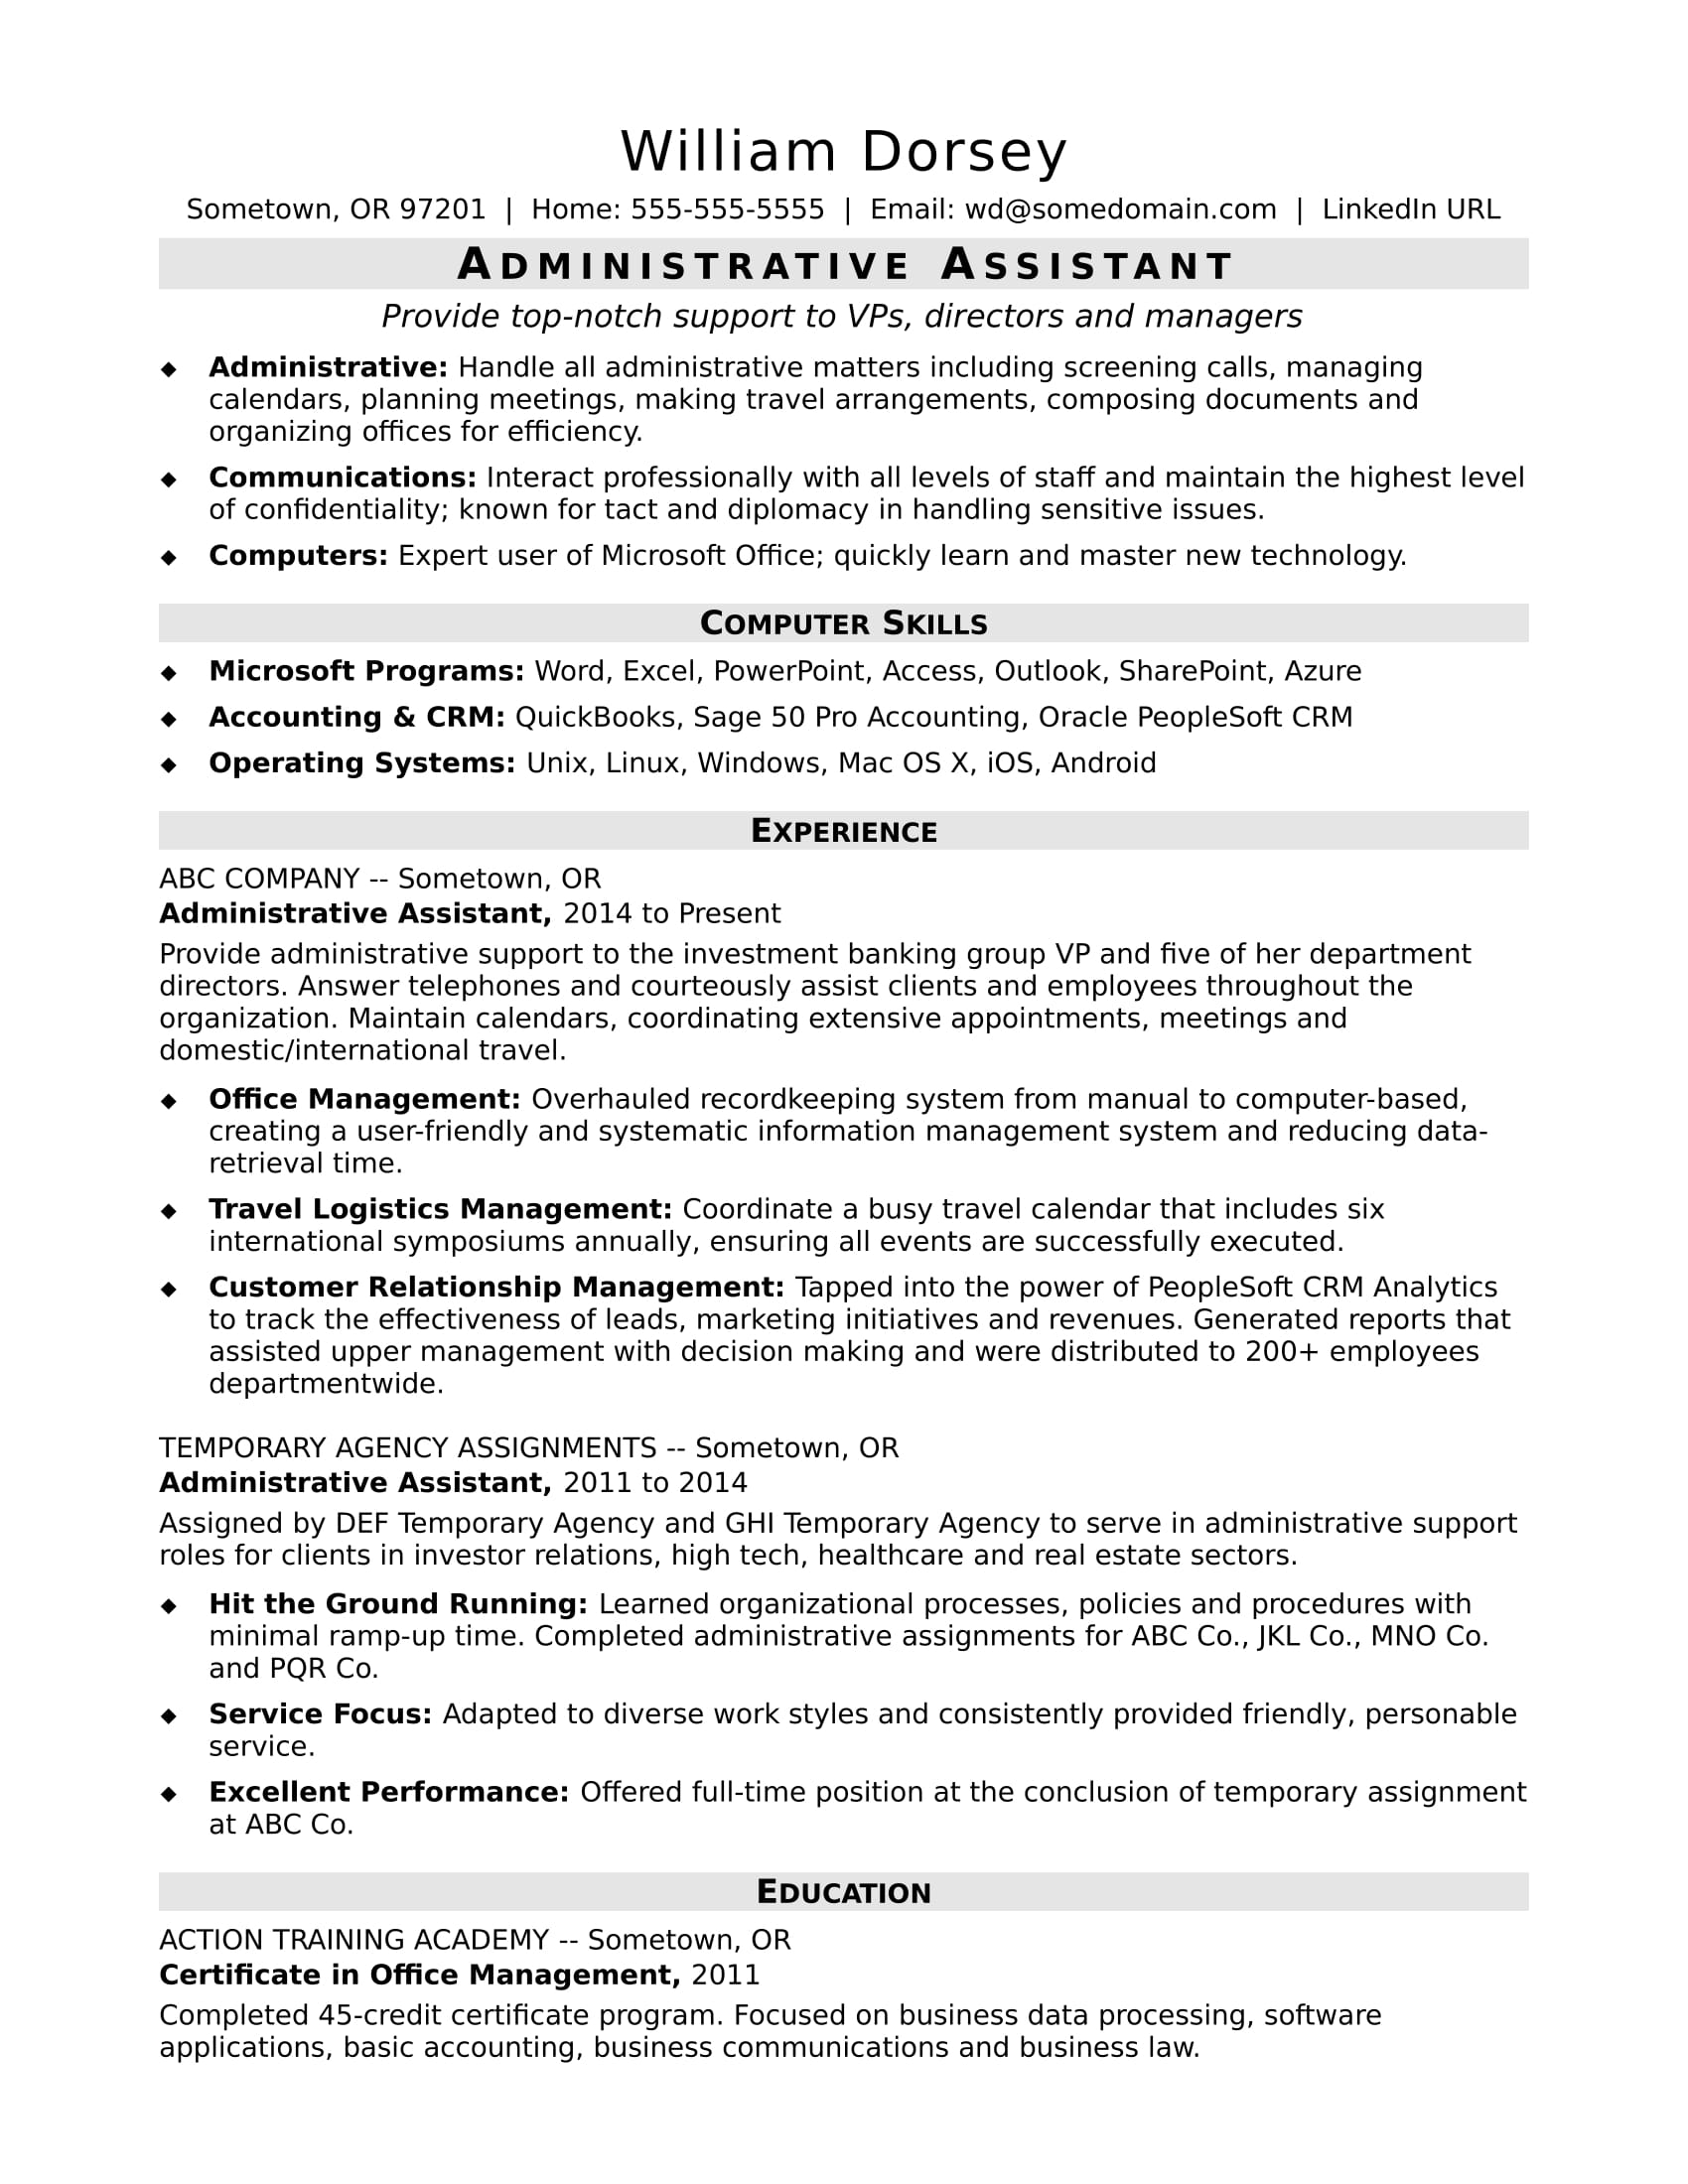 midlevel administrative assistant resume sample monster microsoft azure administrator Resume Microsoft Azure Administrator Sample Resume